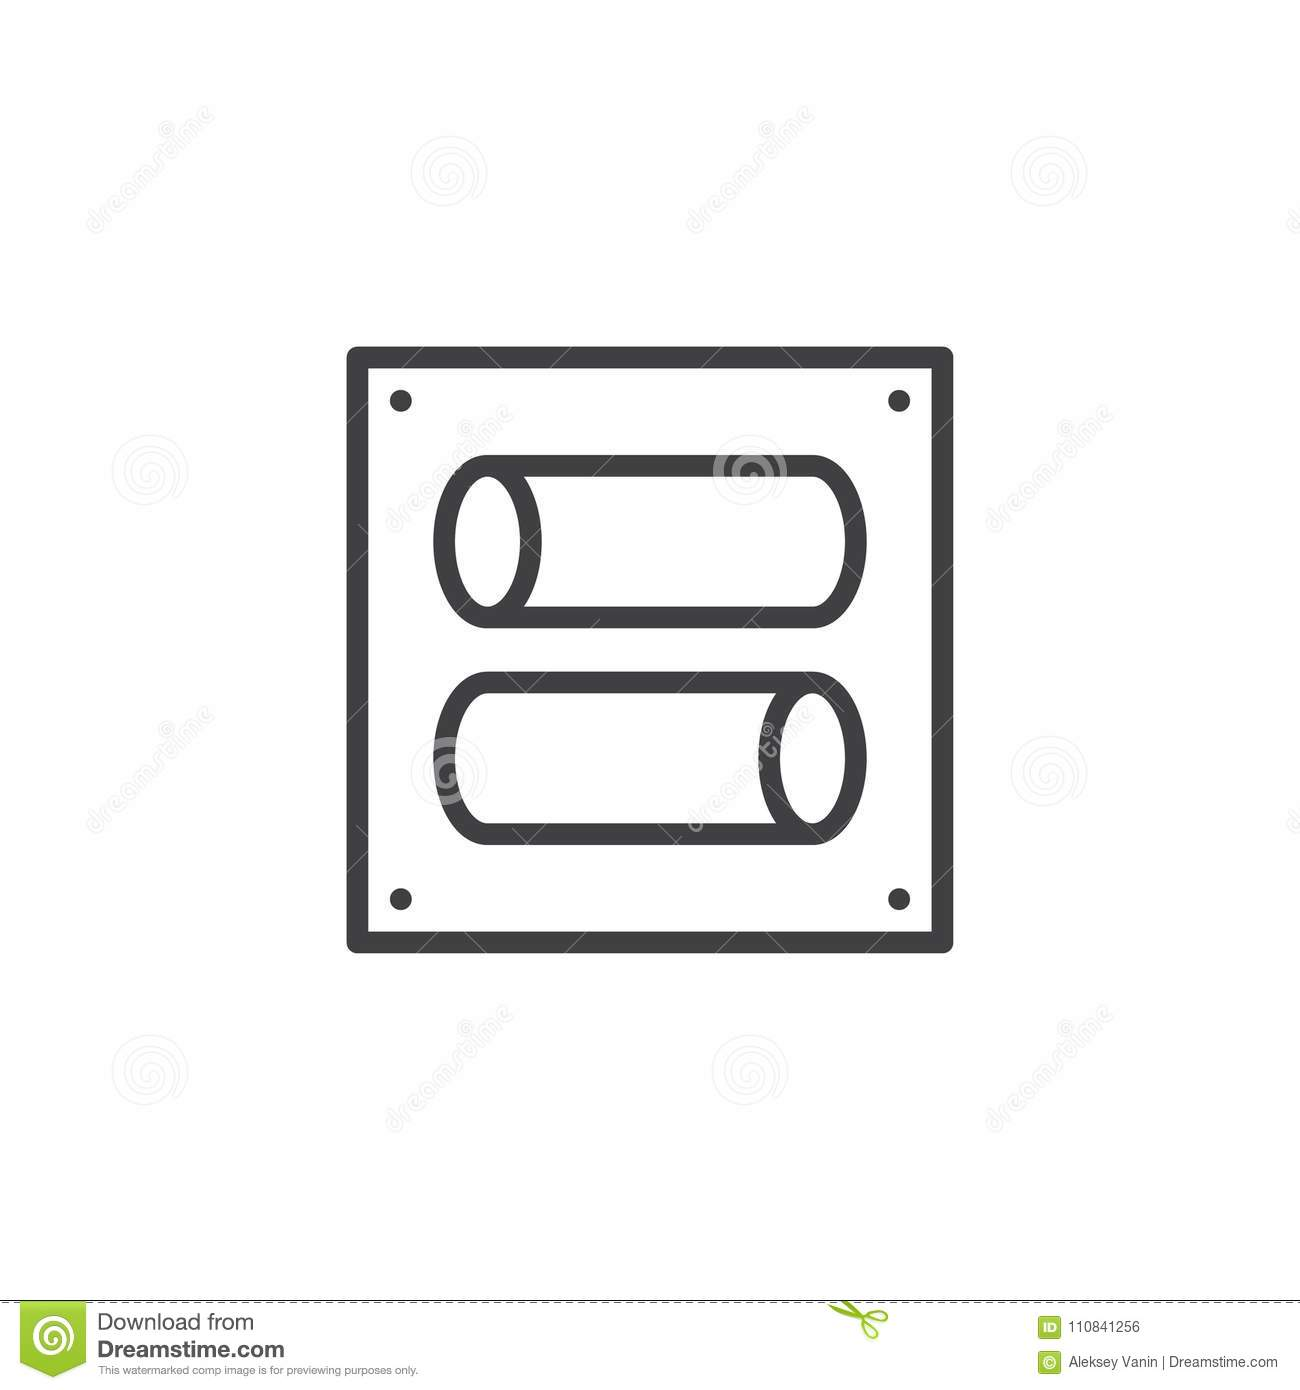 Charming toggle symbol photos the best electrical circuit toggle switch outline icon stock vector illustration of tumbler biocorpaavc Images